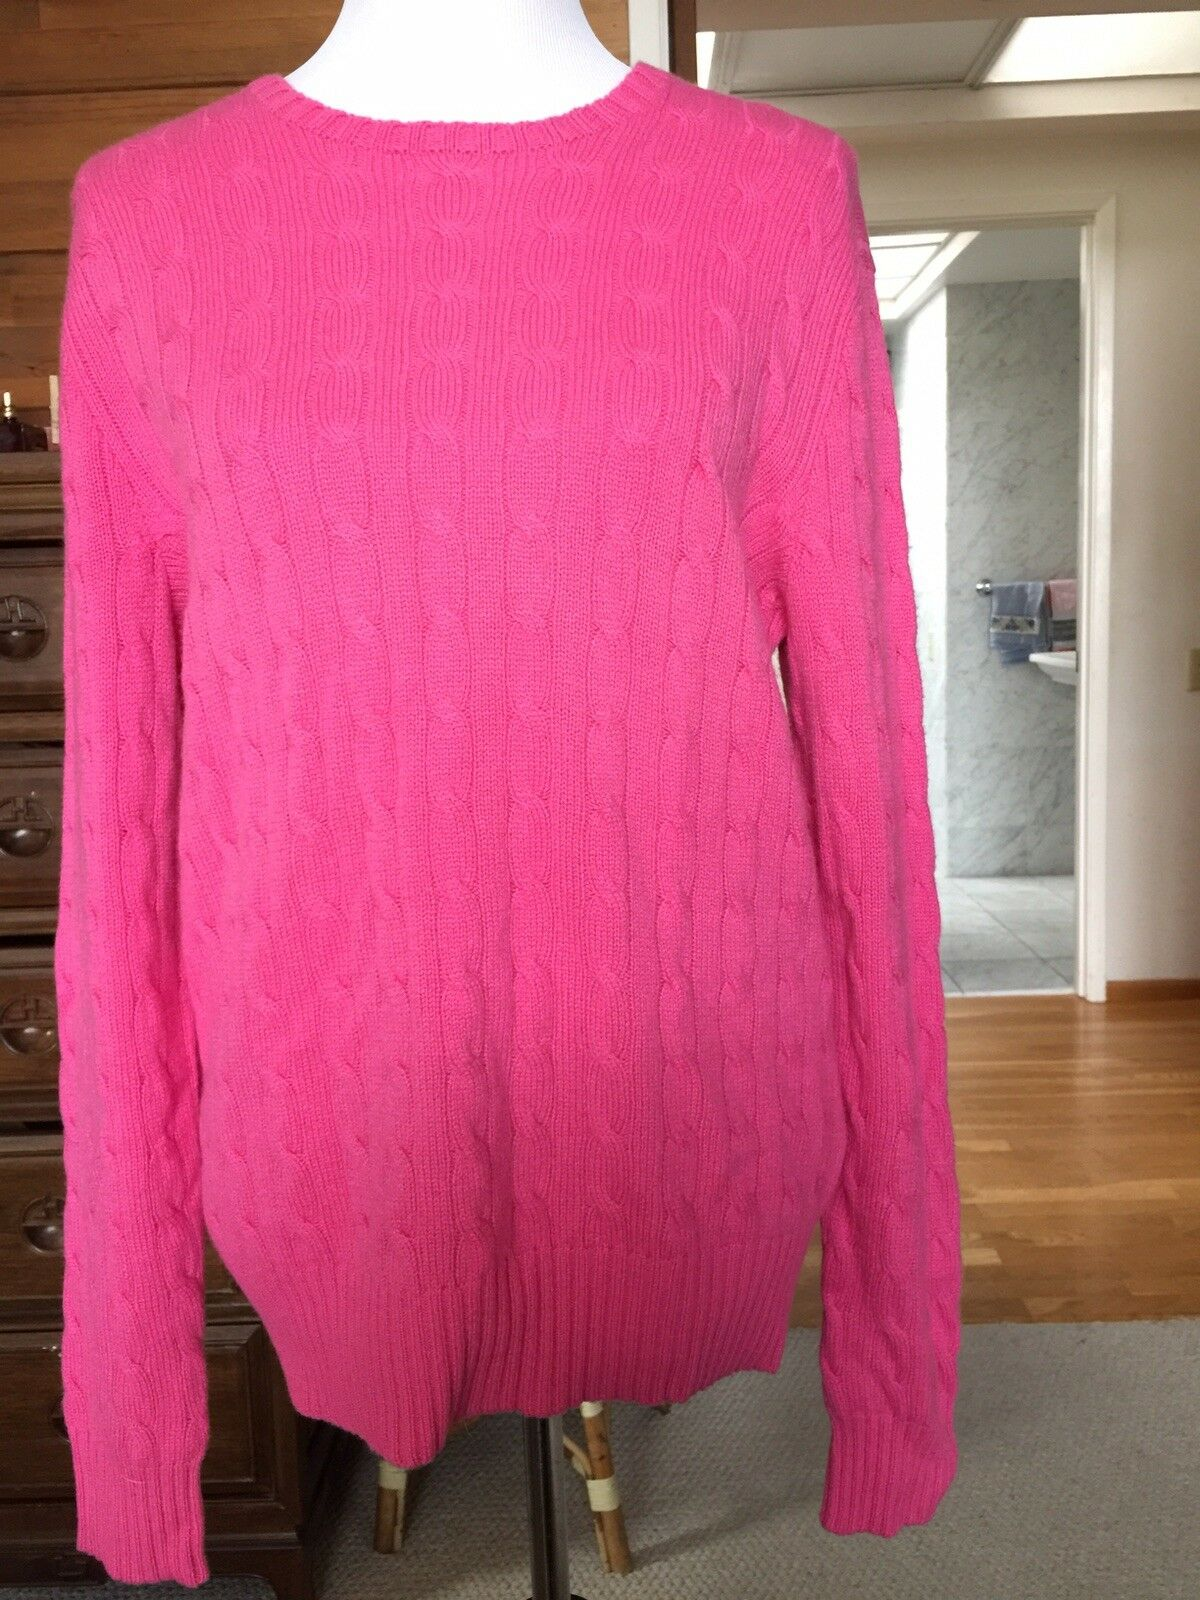 New NWT Polo Ralph Lauren Preppy Pink 100% Cashmere Sweater Size L Large